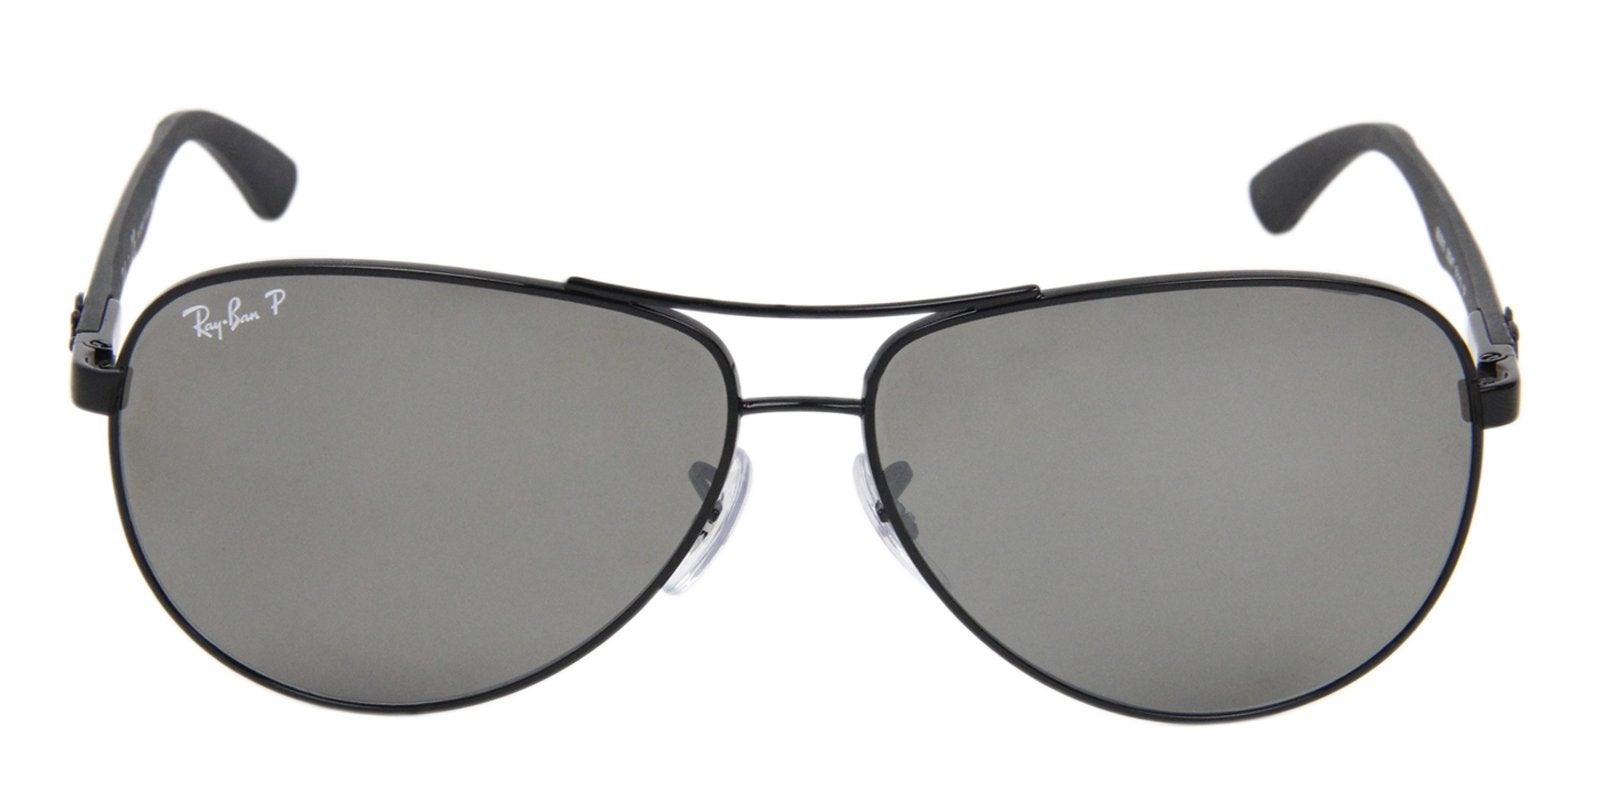 Ray Ban - RB8313 Black Aviator Men Sunglasses - 61mm-Sunglasses-Designer Eyes